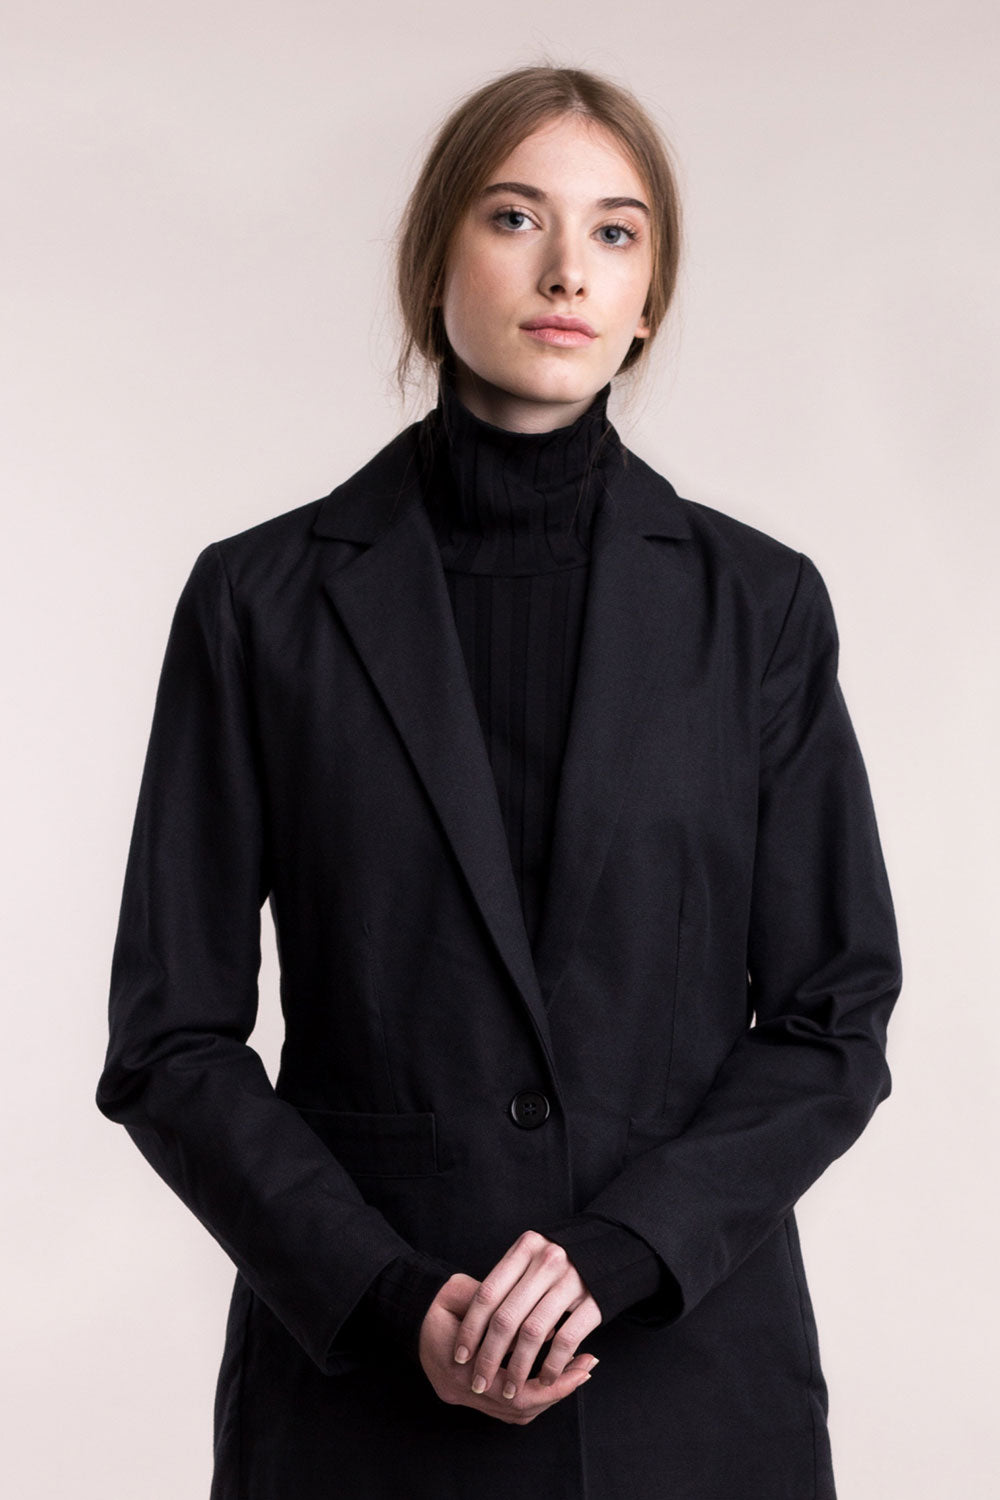 The model wears a black, sustainable, organic cotton, tailored jacket, front view.